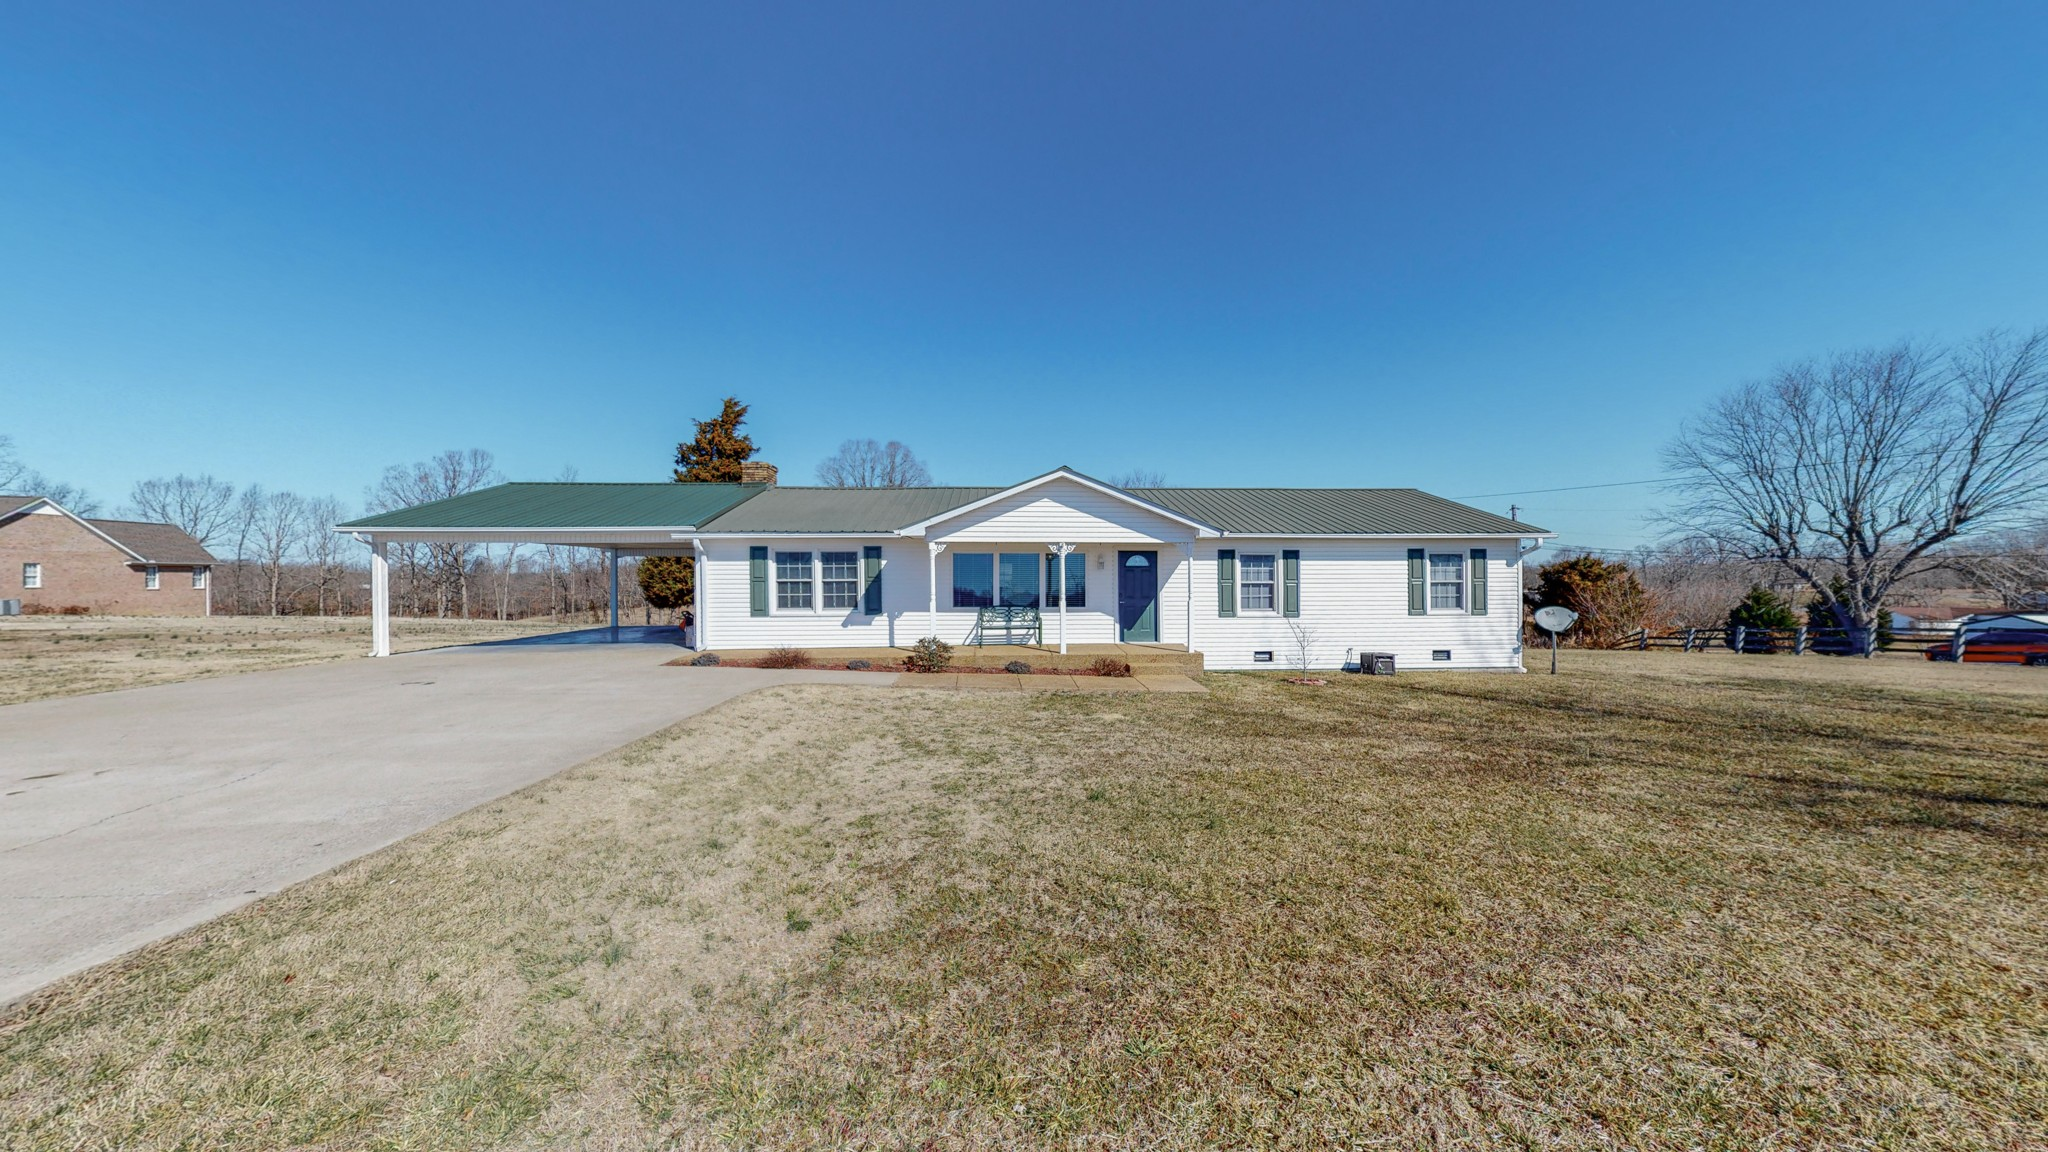 1390 Cooley Ford Rd Property Photo - Tennessee Ridge, TN real estate listing